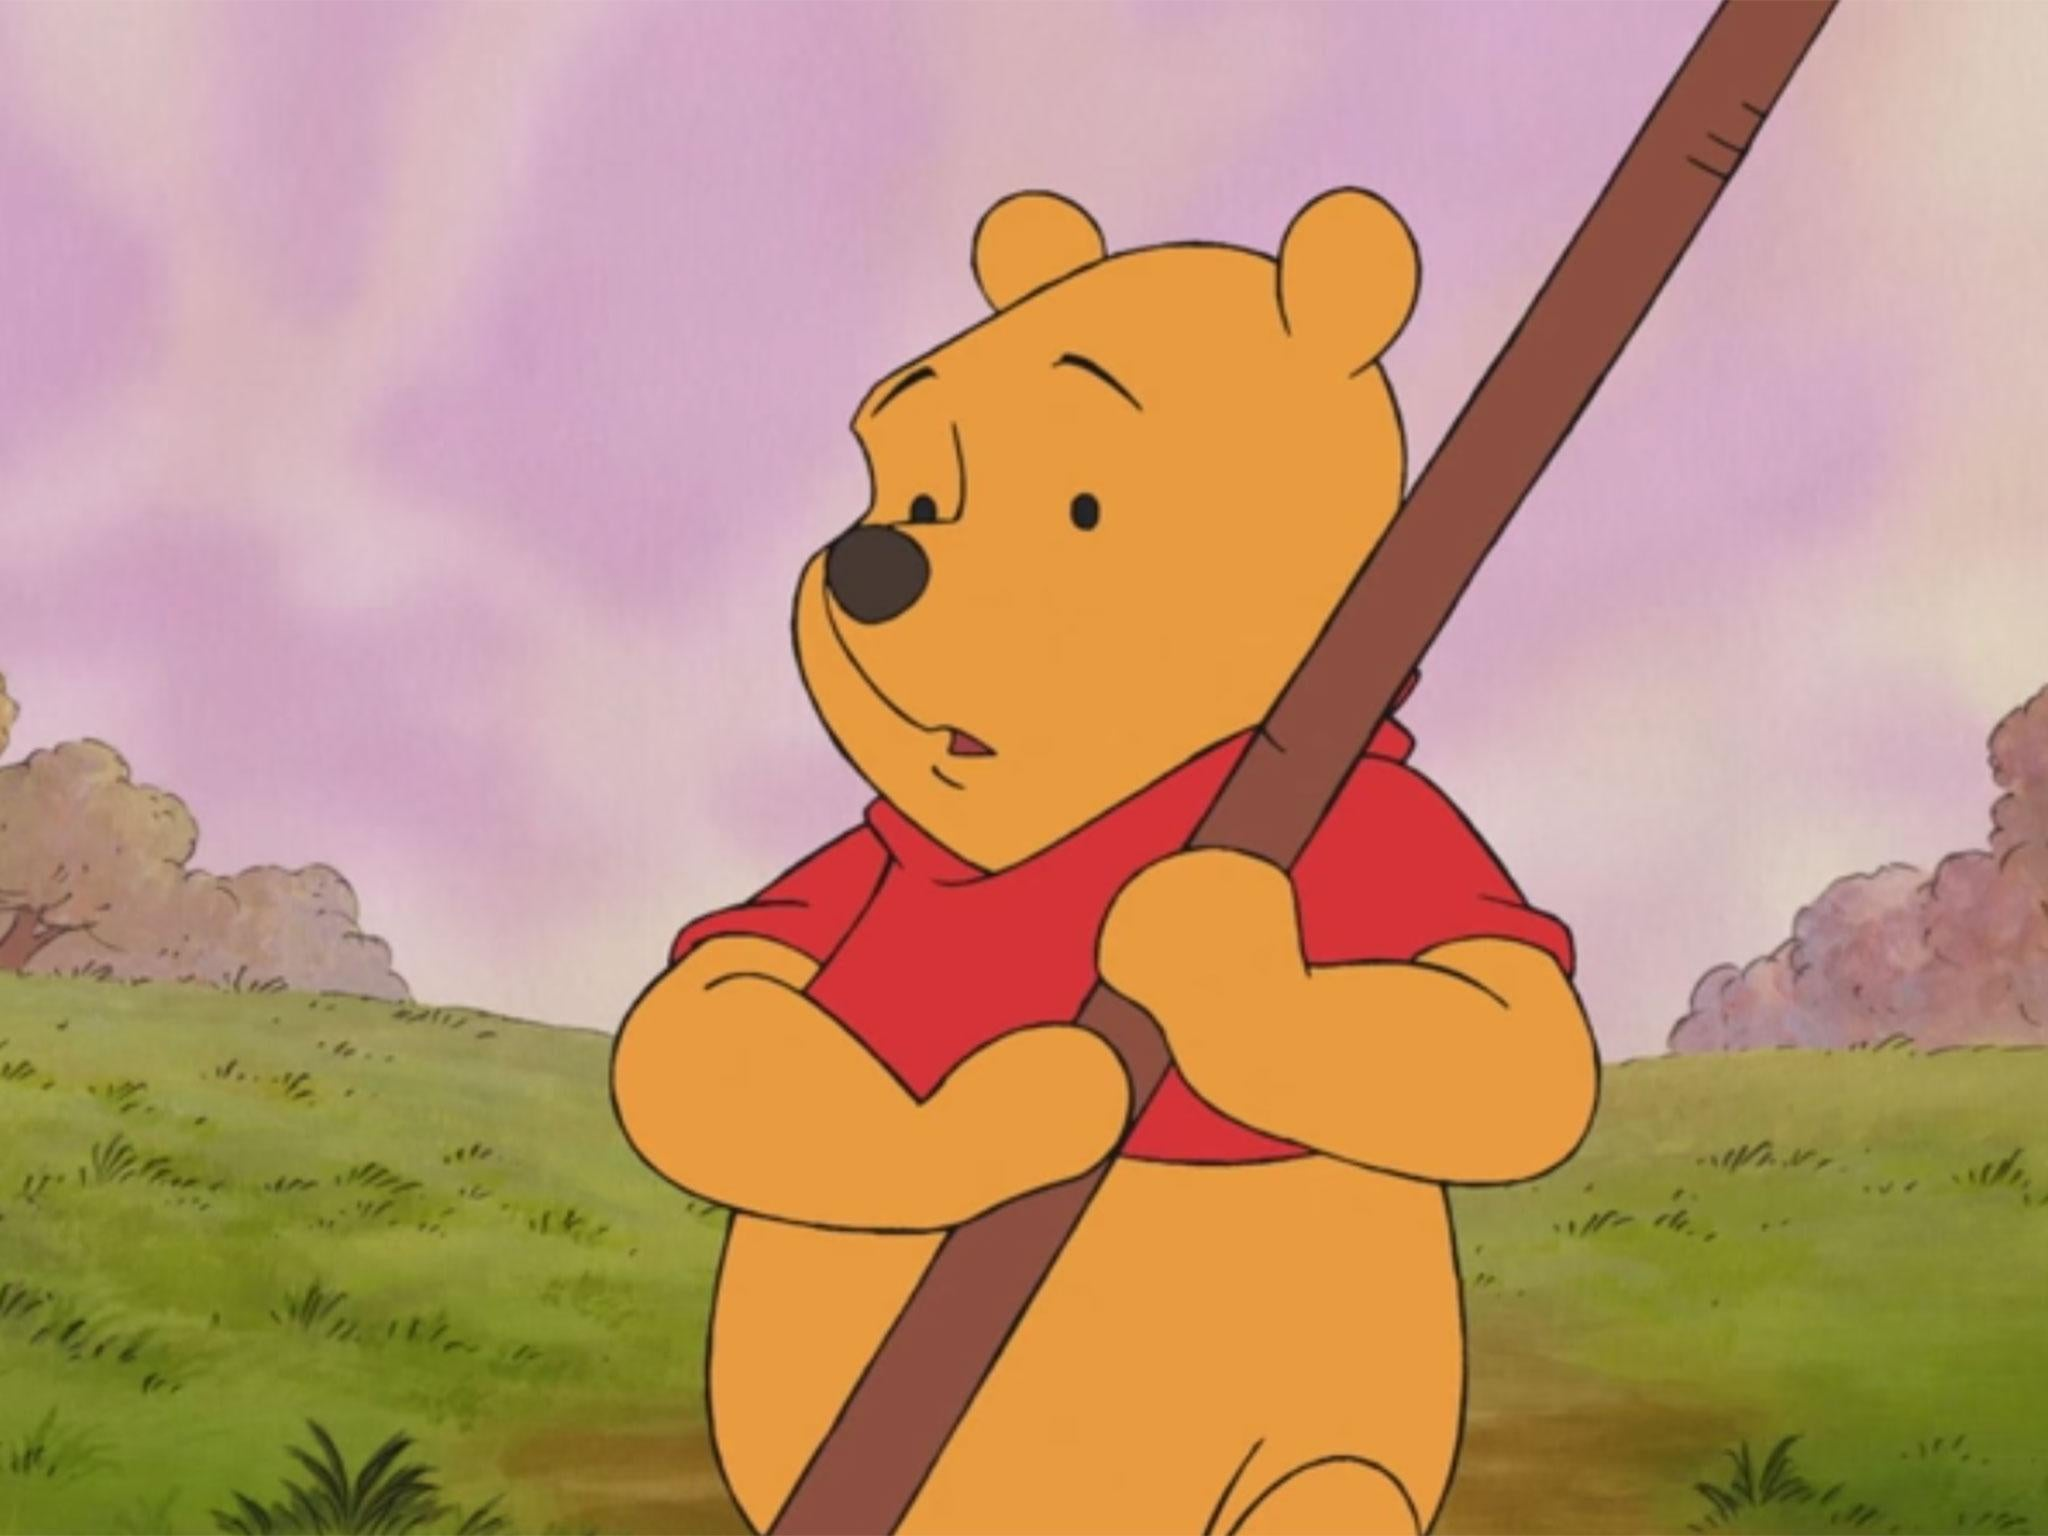 winnie the pooh banned from polish playground for being